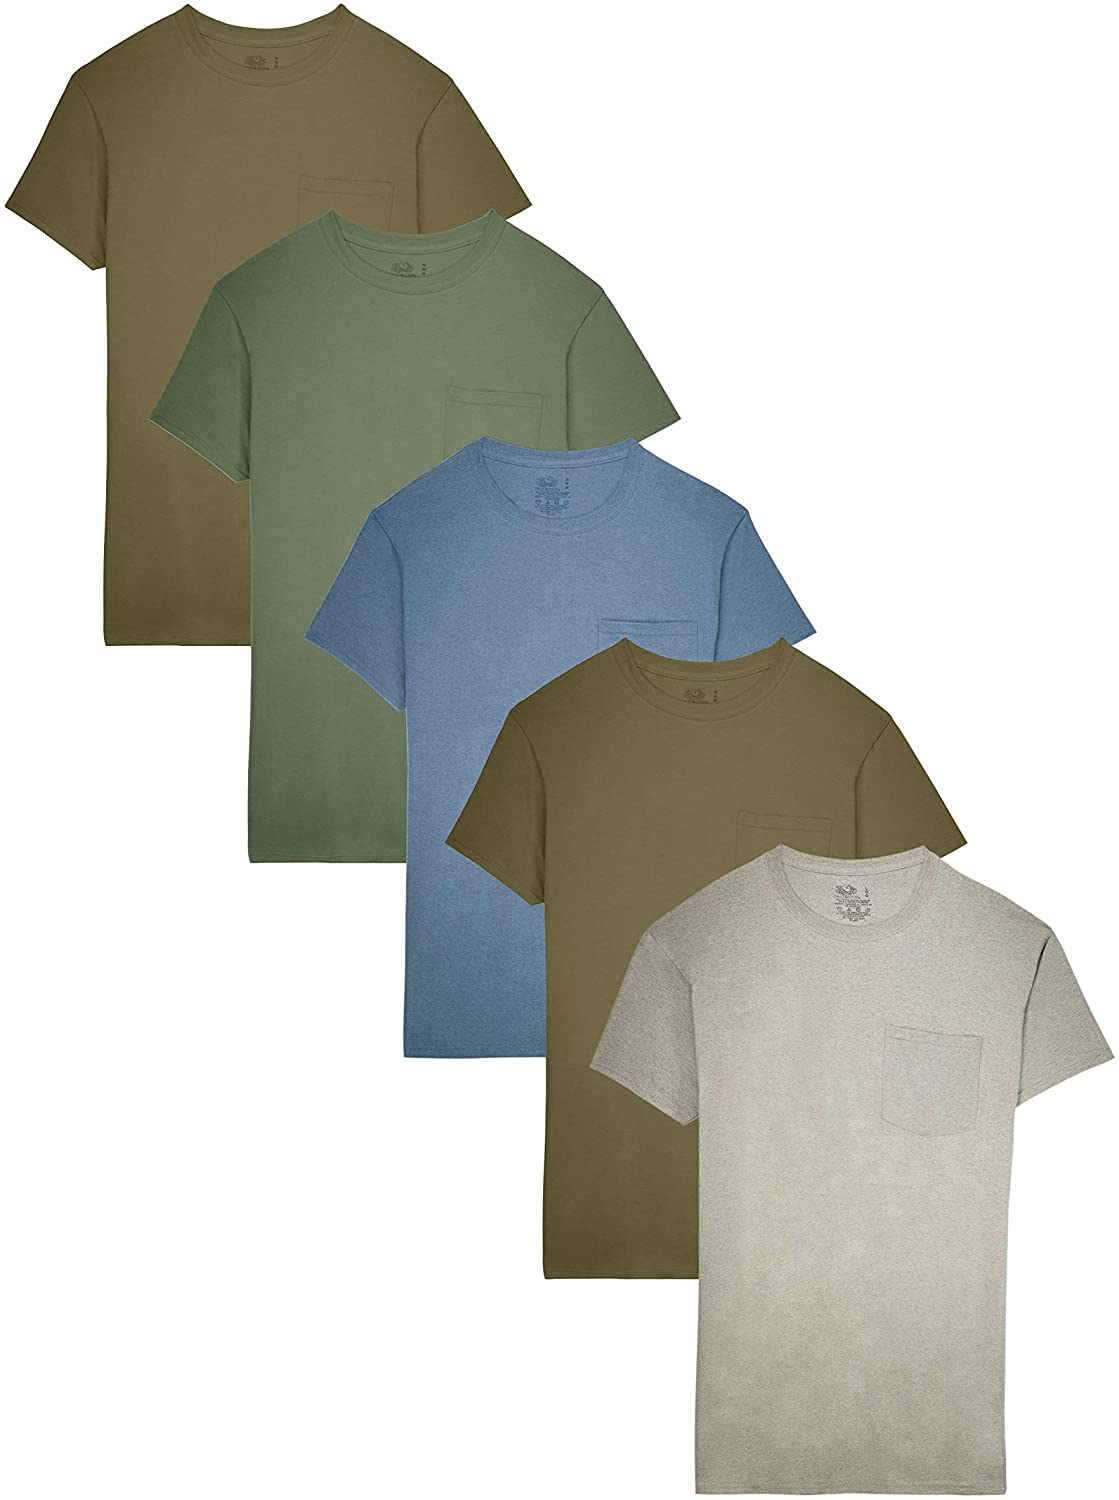 12 FRUIT OF THE LOOM SHORT SLEEVE POCKET T-SHIRTS 2X